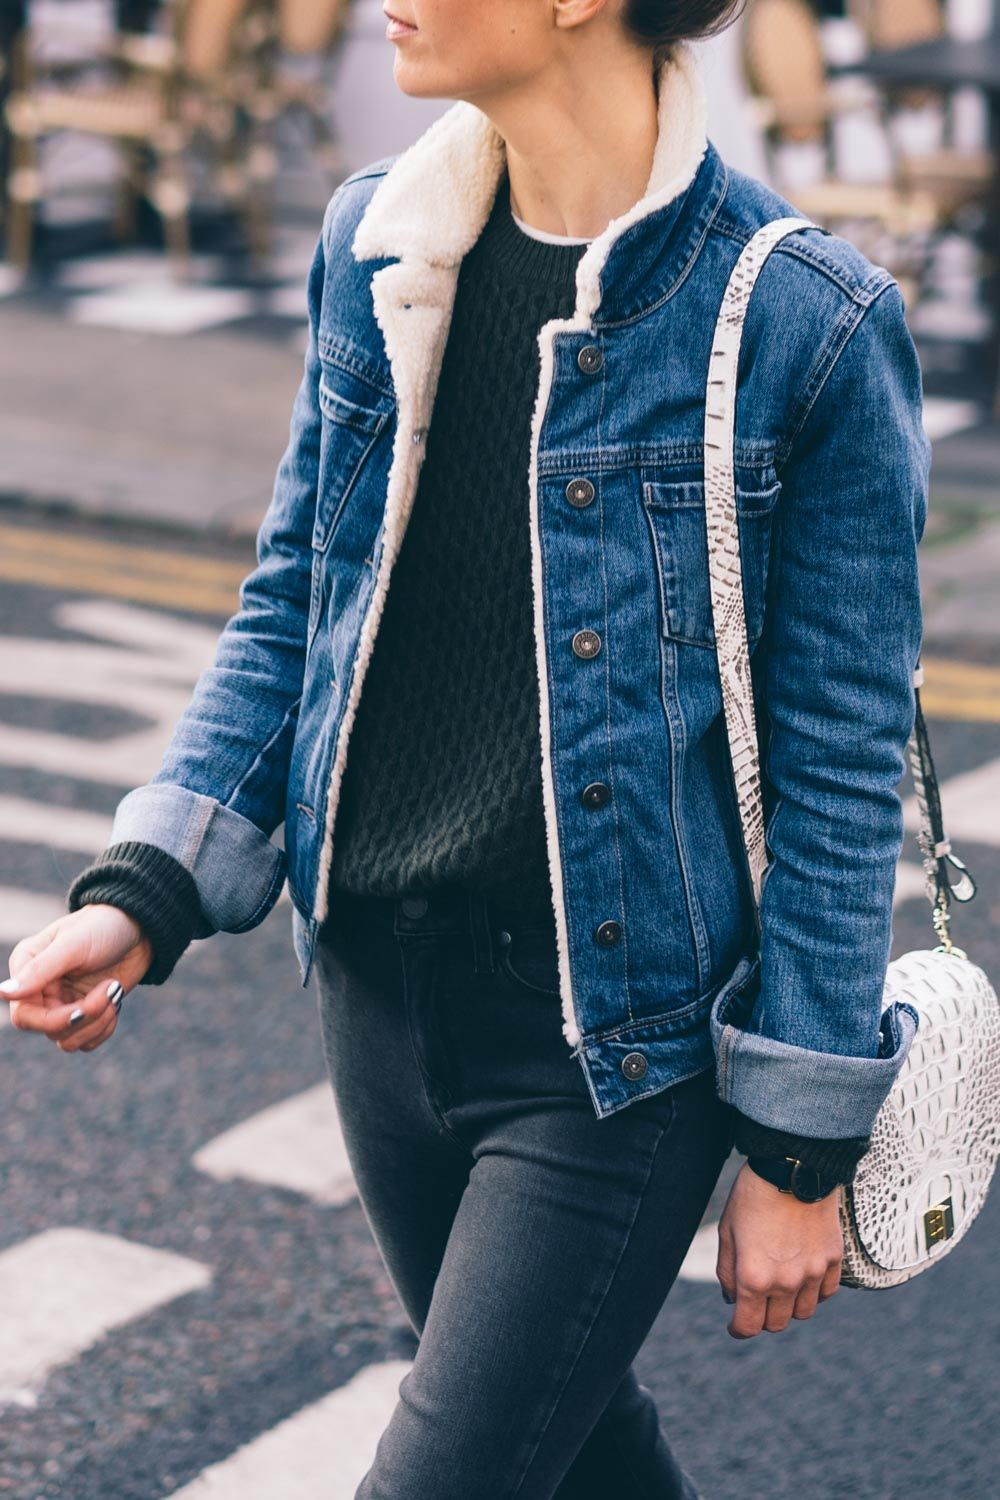 Faux Shearling Lined Jean Jacket Prosecco Plaid Lined Denim Jacket Fur Lined Denim Jacket Jacket Outfits [ 1500 x 1000 Pixel ]